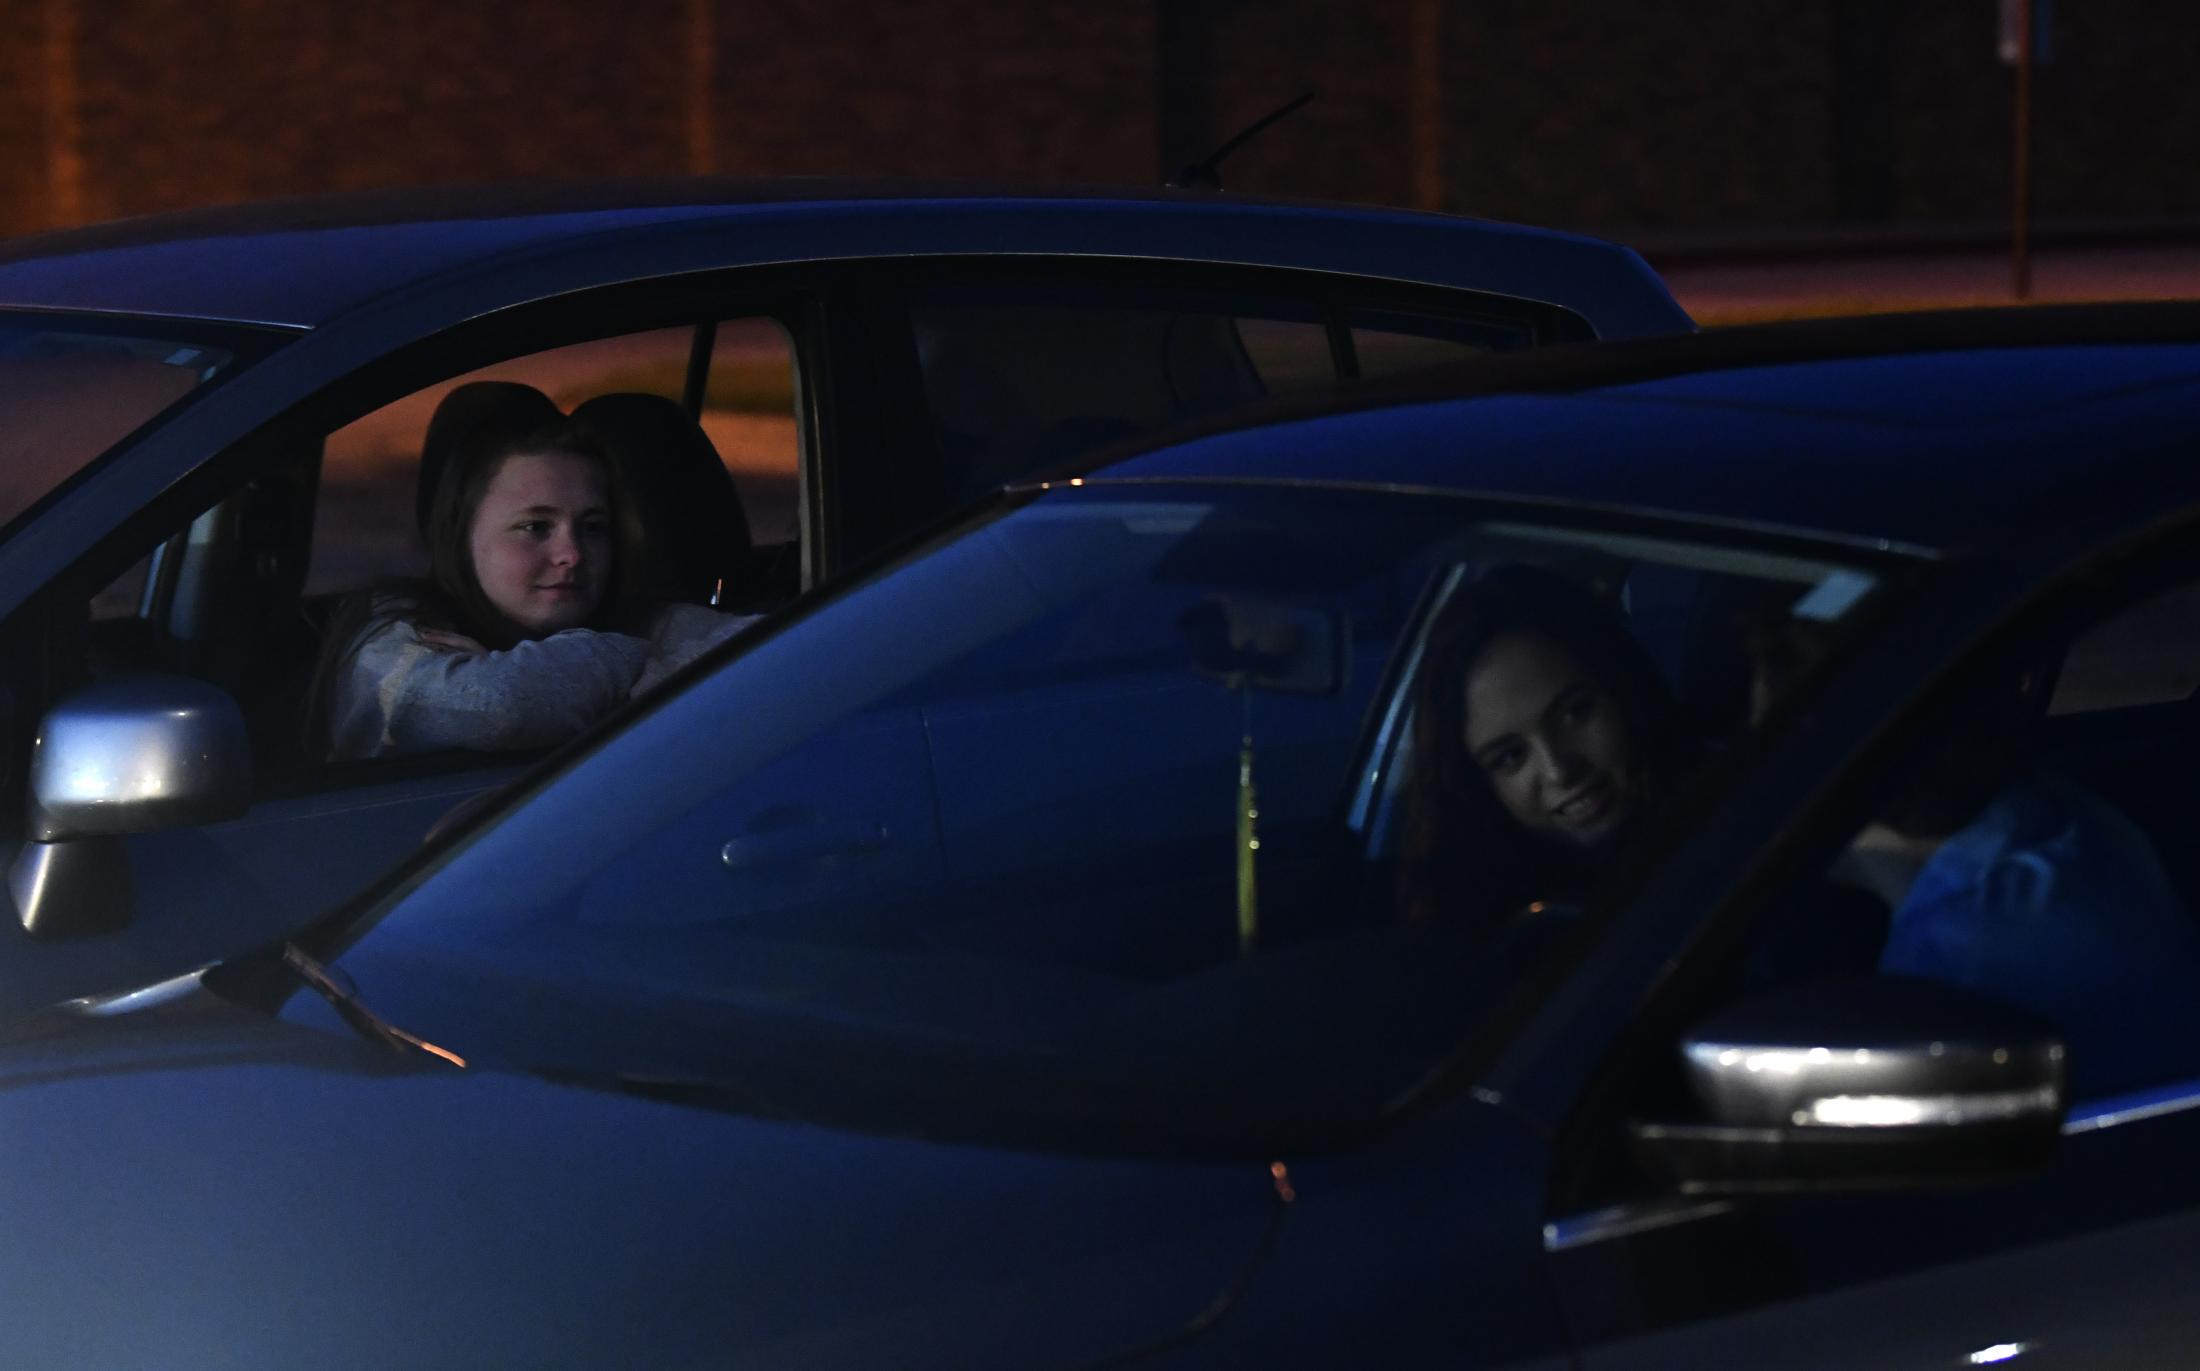 Rock Bridge seniors Madi Polnika, left, 18, Kennedy Robbins, center, 18, and Joseph Gard, right, 18, talk in the school parking lot on April 17, 2020 at Rock Bridge High School in Columbia, Missouri. The three talked about what was happening in their lives now that their year had been cut short due to the COVID-19 pandemic.